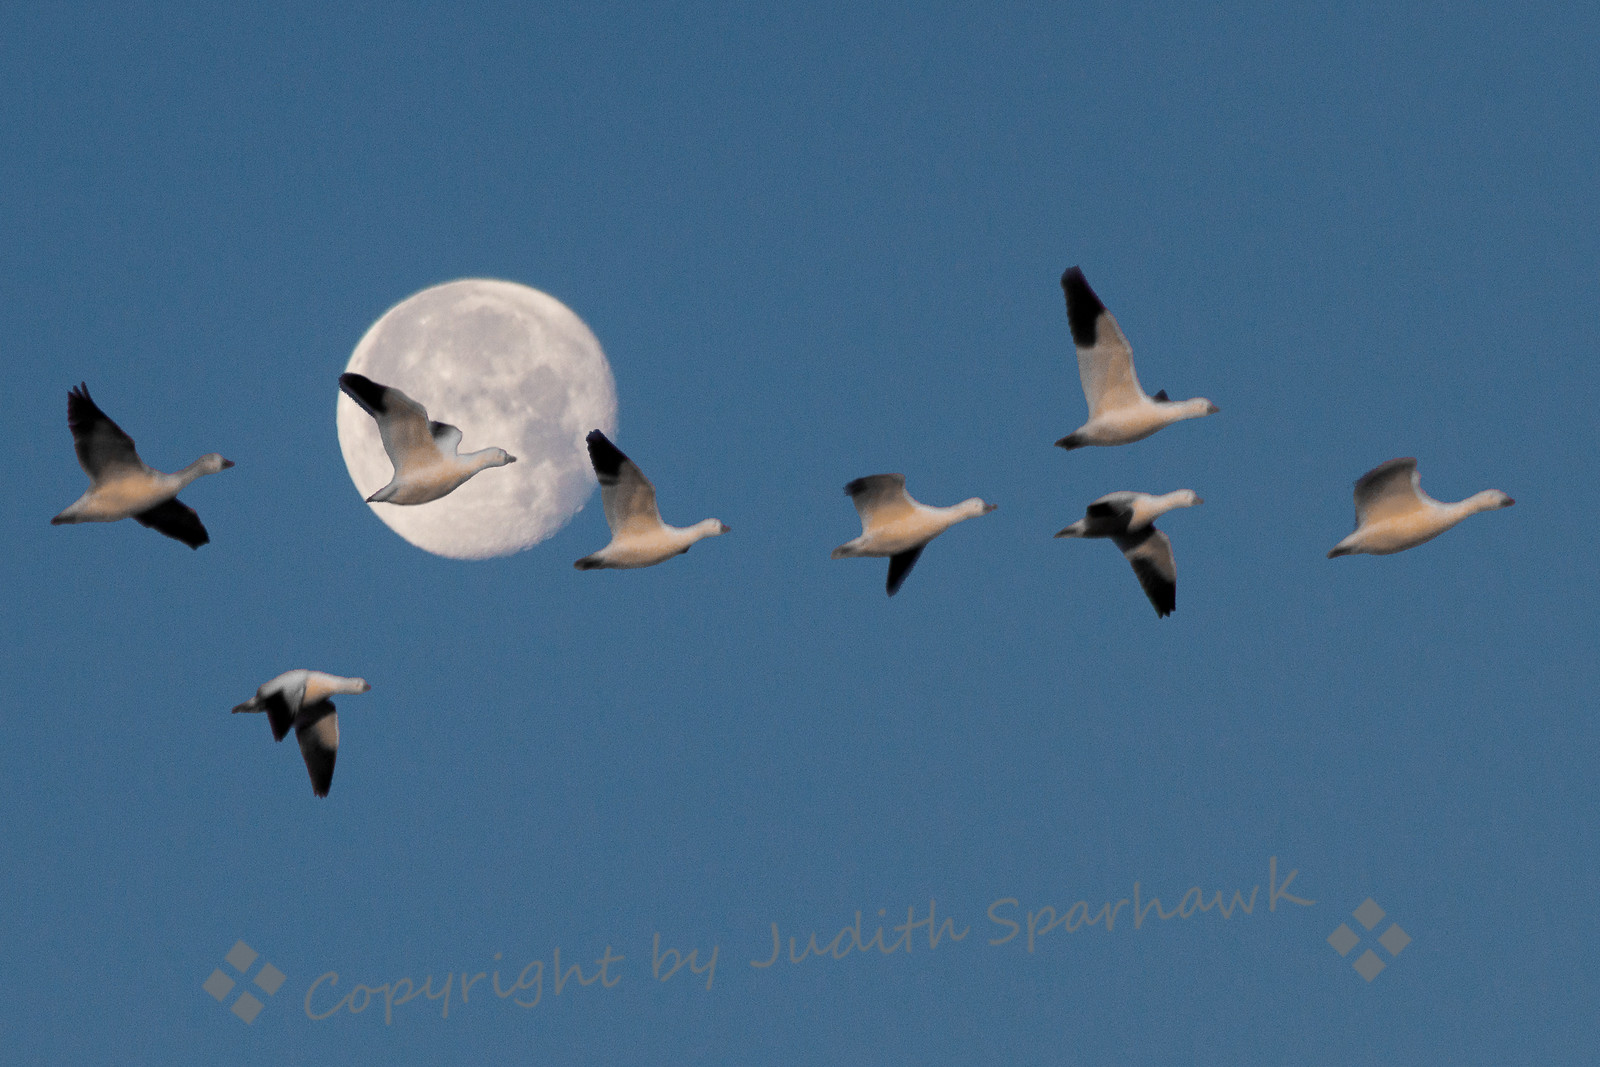 Moon Flight of Snow Geese